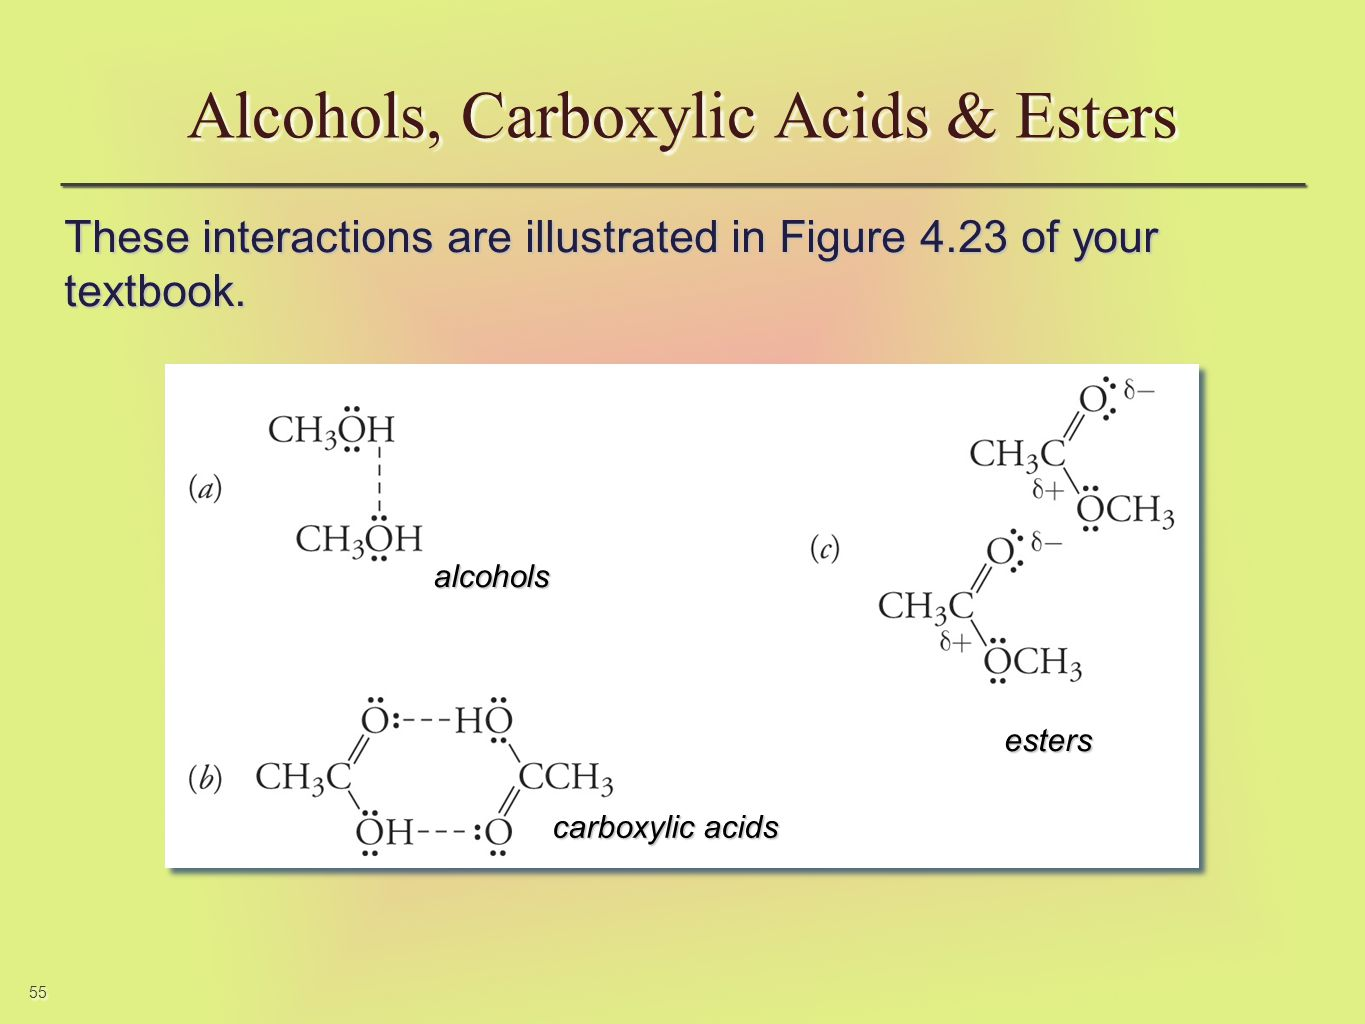 55 These interactions are illustrated in Figure 4.23 of your textbook. Alcohols, Carboxylic Acids & Esters alcoholsalcohols carboxylic acids estersest